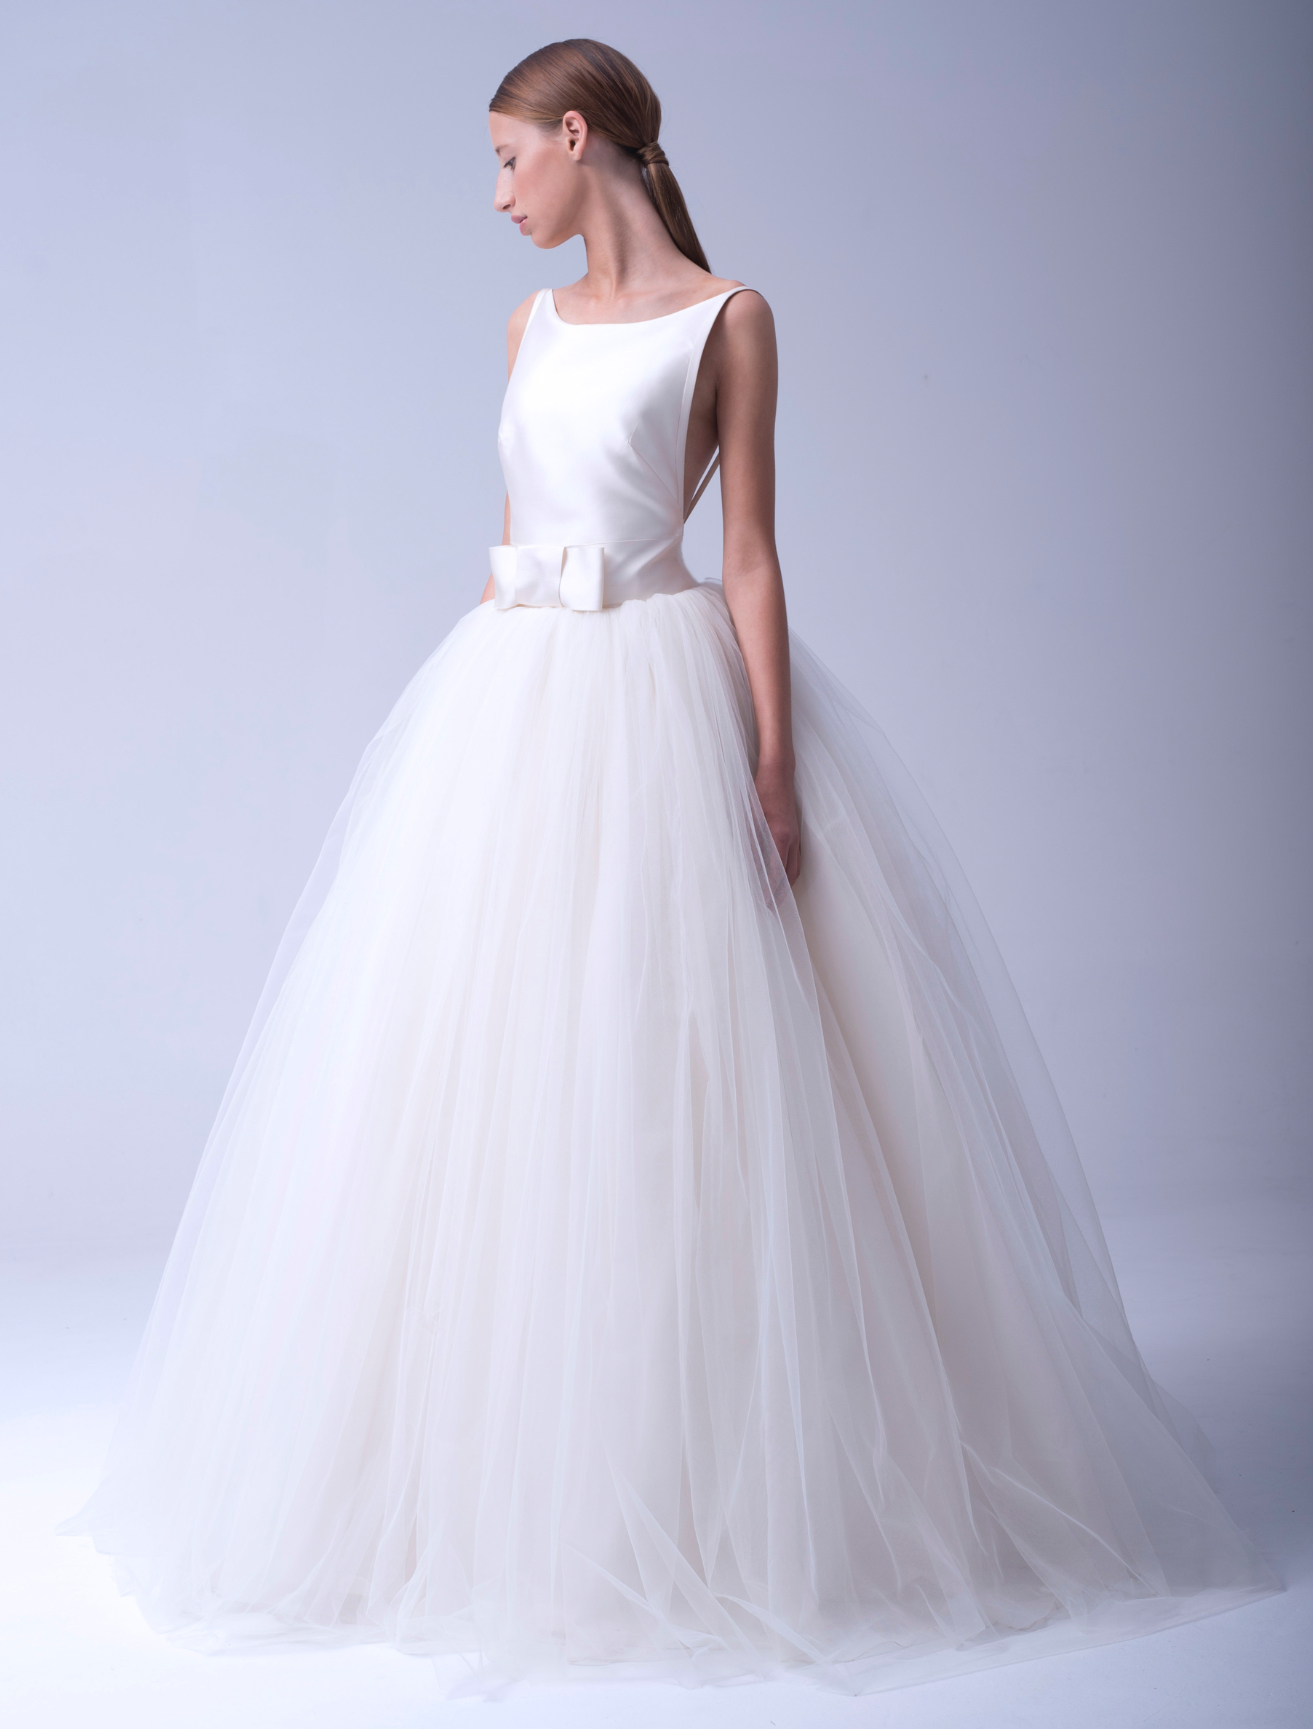 Darb Bridal Couture featured on LOVE FIND CO. Bridal Directory